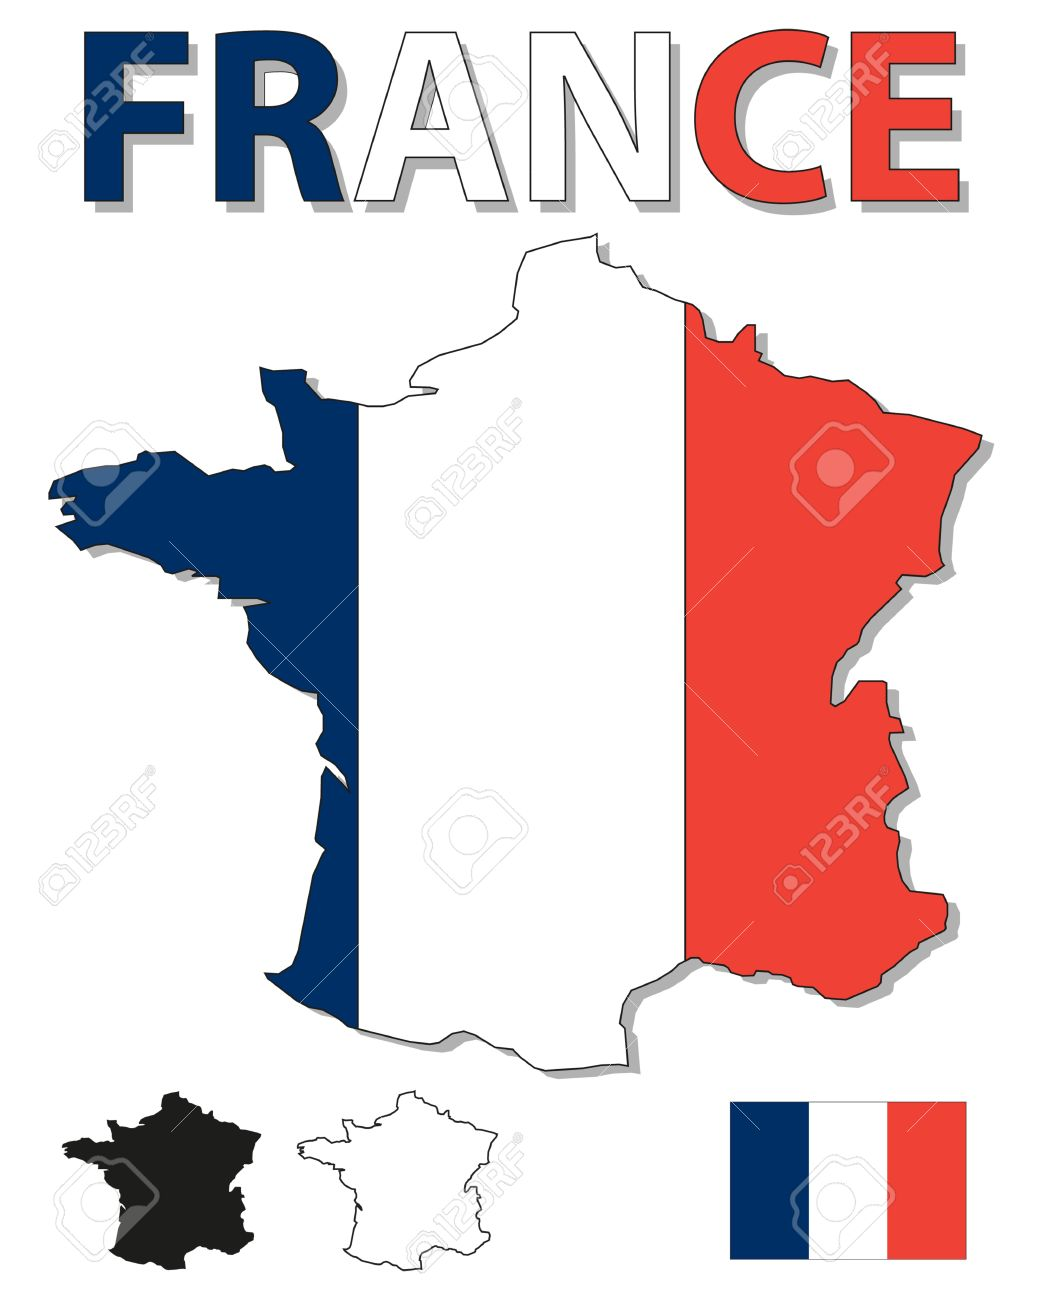 France Map Flag.Outline Map Of France Filled With French Flag Royalty Free Cliparts